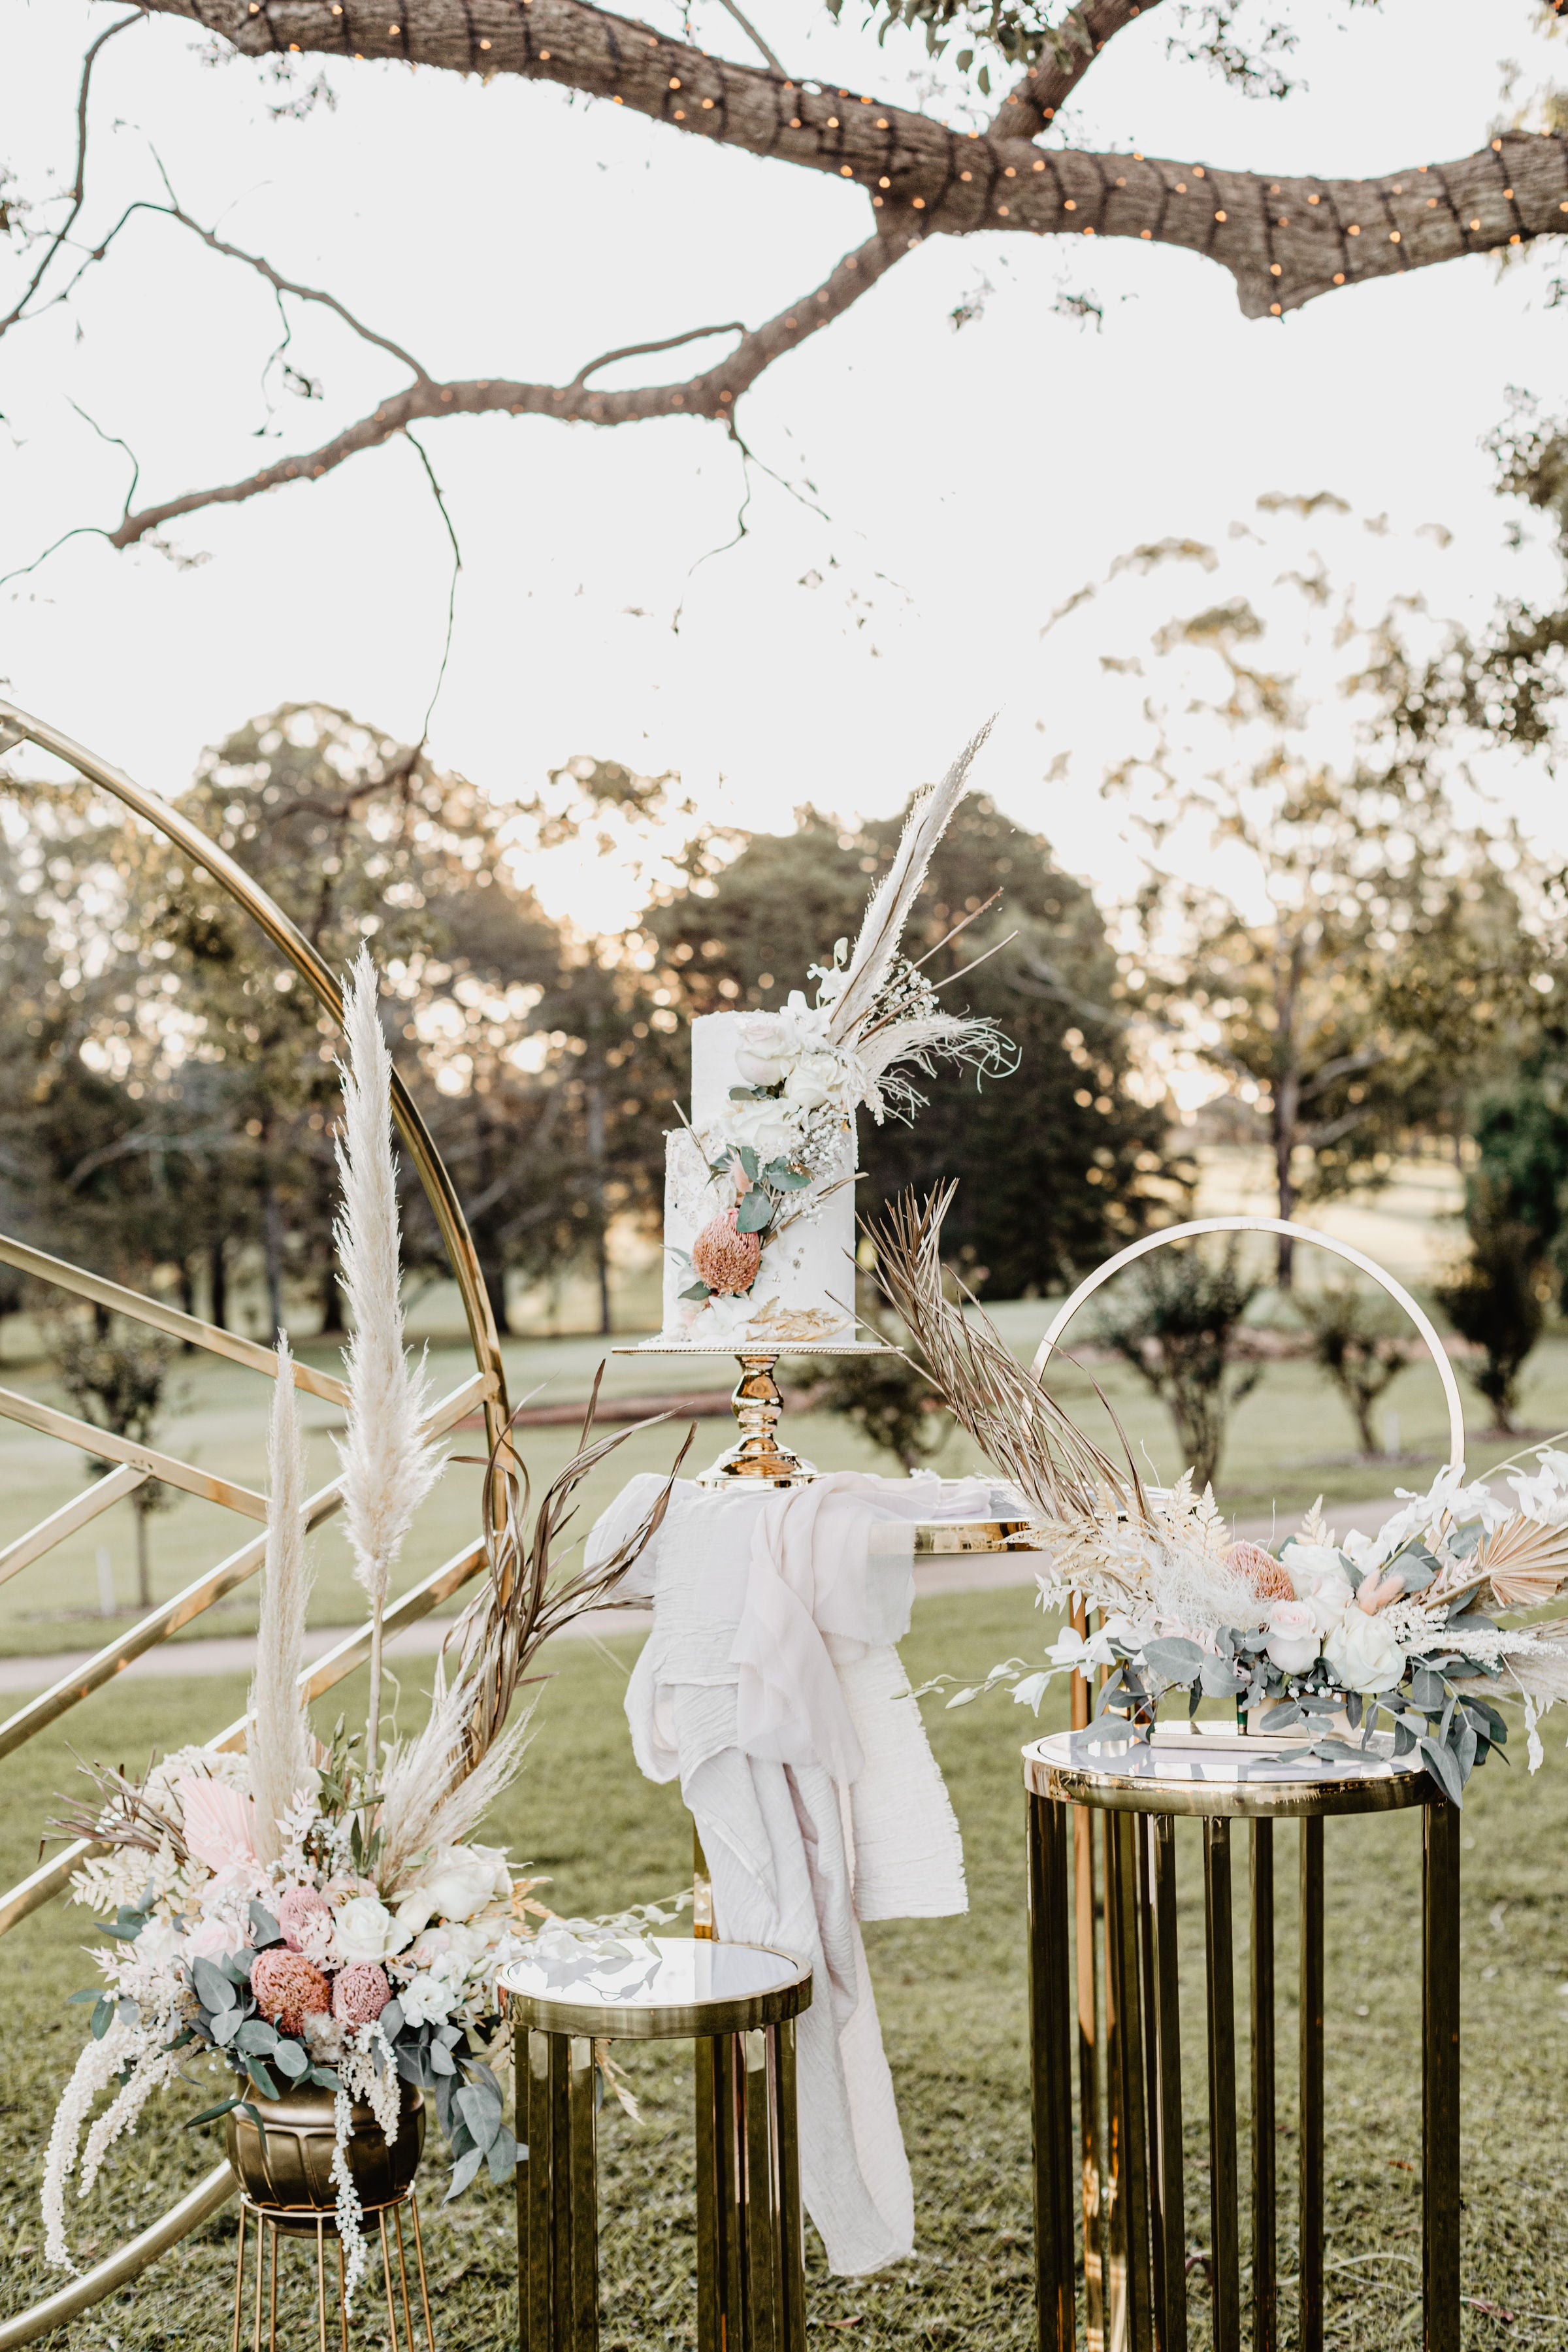 Wedding Hire in Toowoomba, Darling Downs